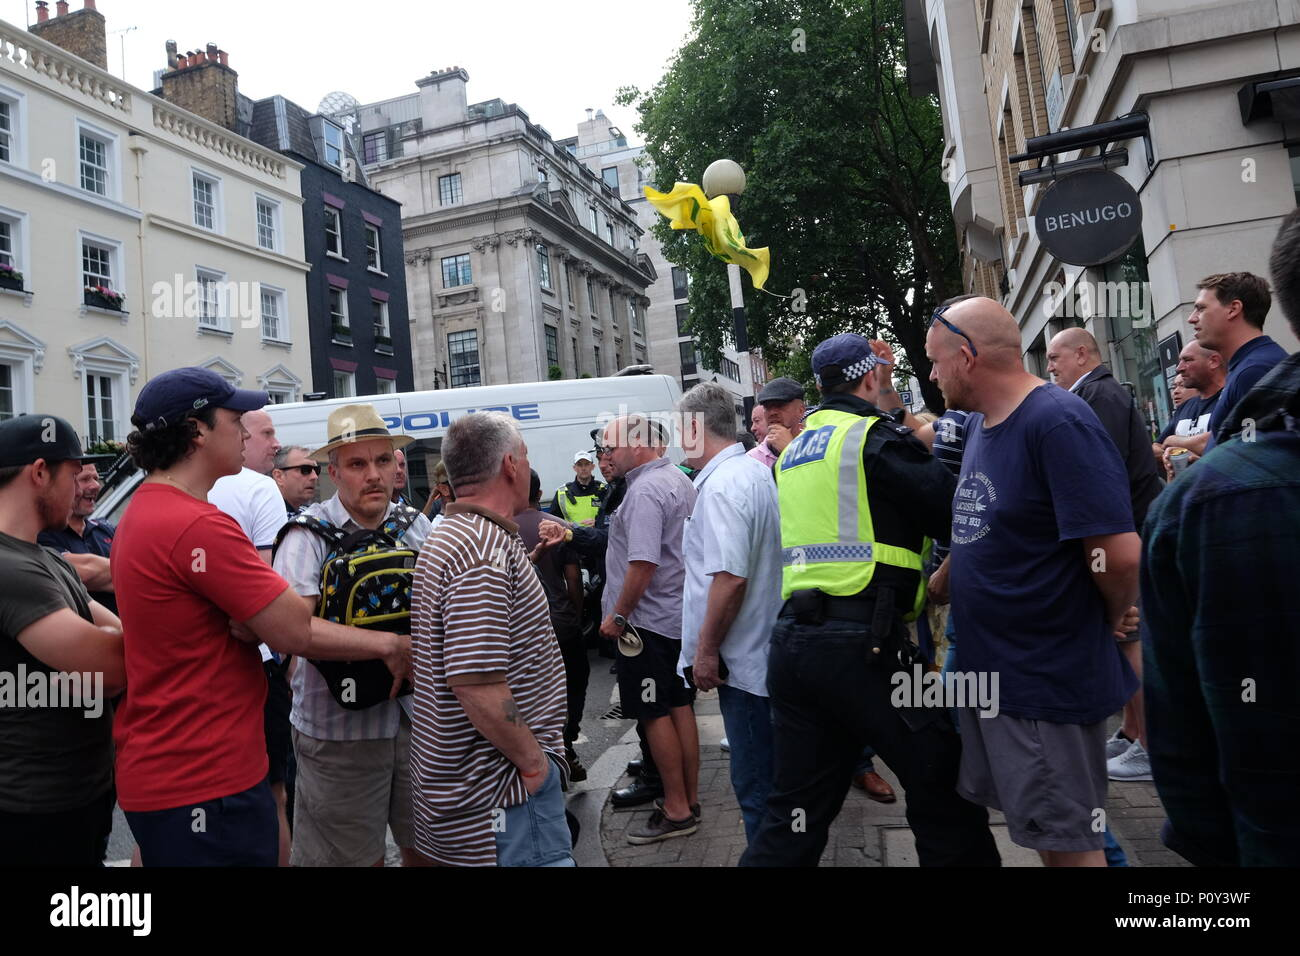 London, UK. 10th June 2018. Al Quds flag is grabbed by far right protester and thrown in the air Credit: Londonphotos/Alamy Live News - Stock Image